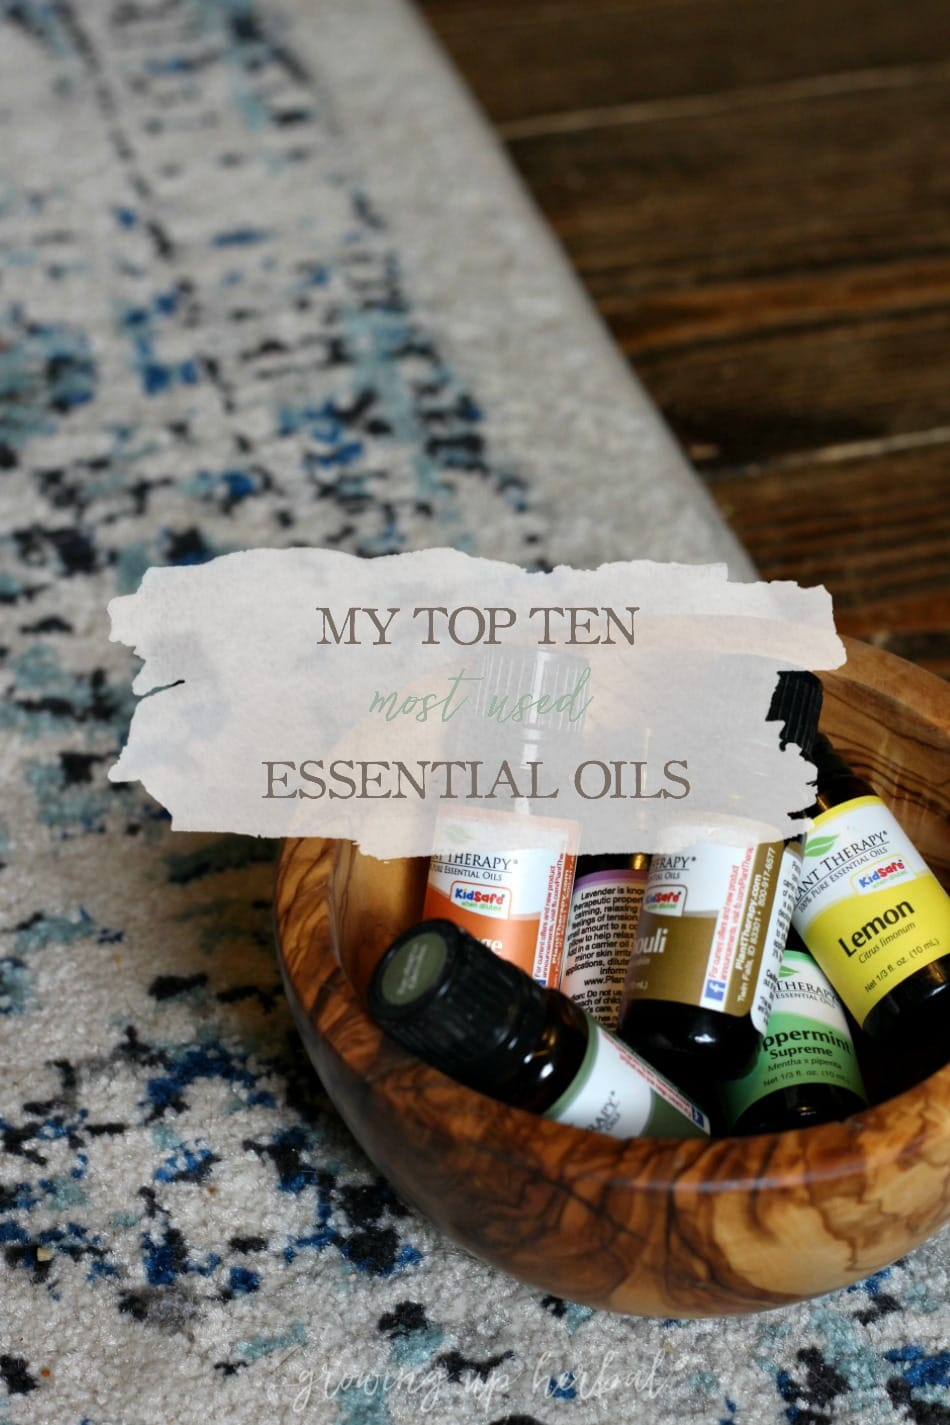 My Top 10 Most Used Essential Oils | Growing Up Herbal | Today, I'm sharing my list of top ten most used essential oils and how I use them. Check it out!